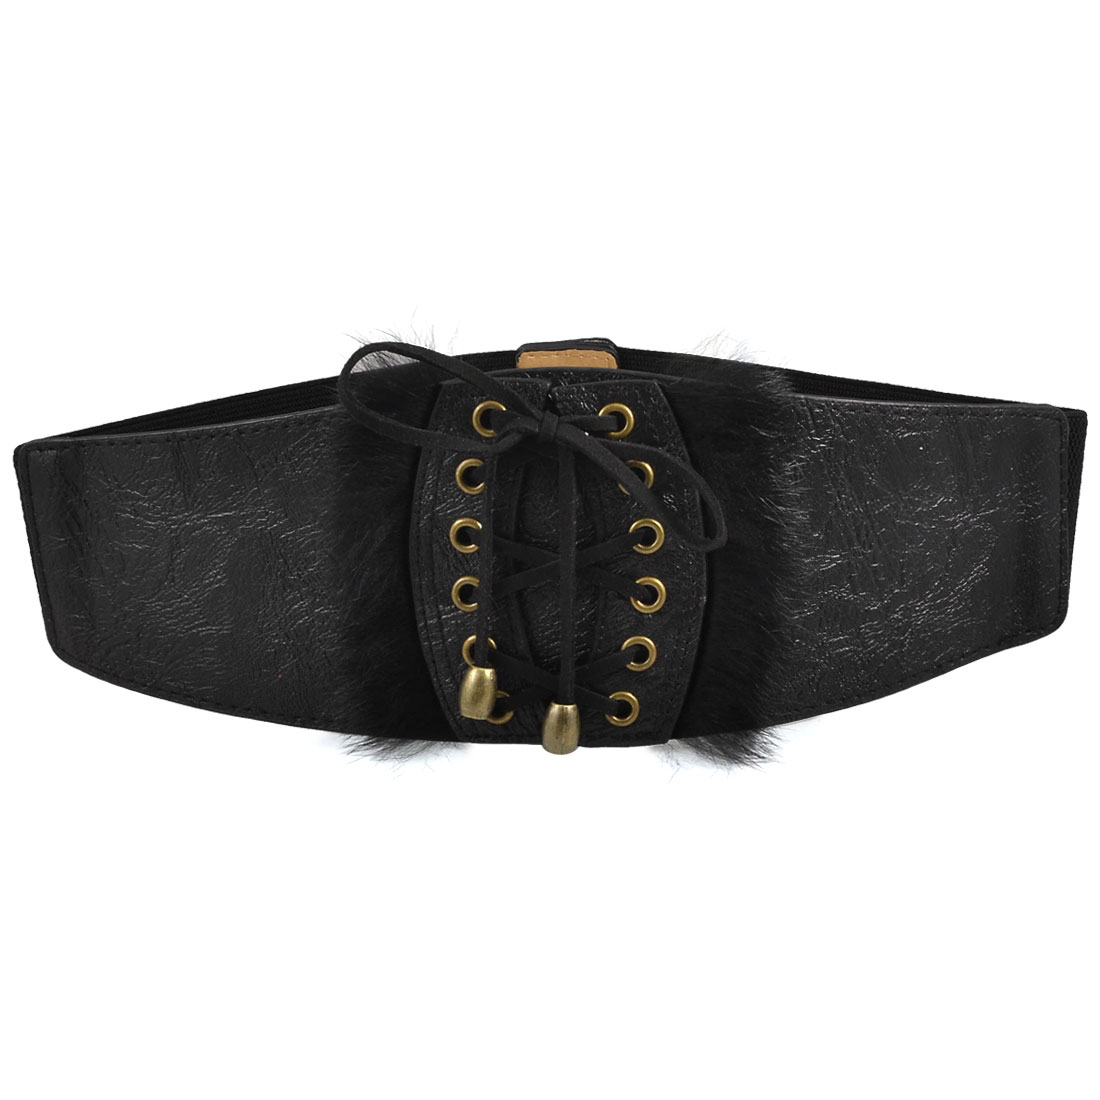 Ladies Lace-up Style Black Faux Leather Elastic Waist Belt Band Cinch